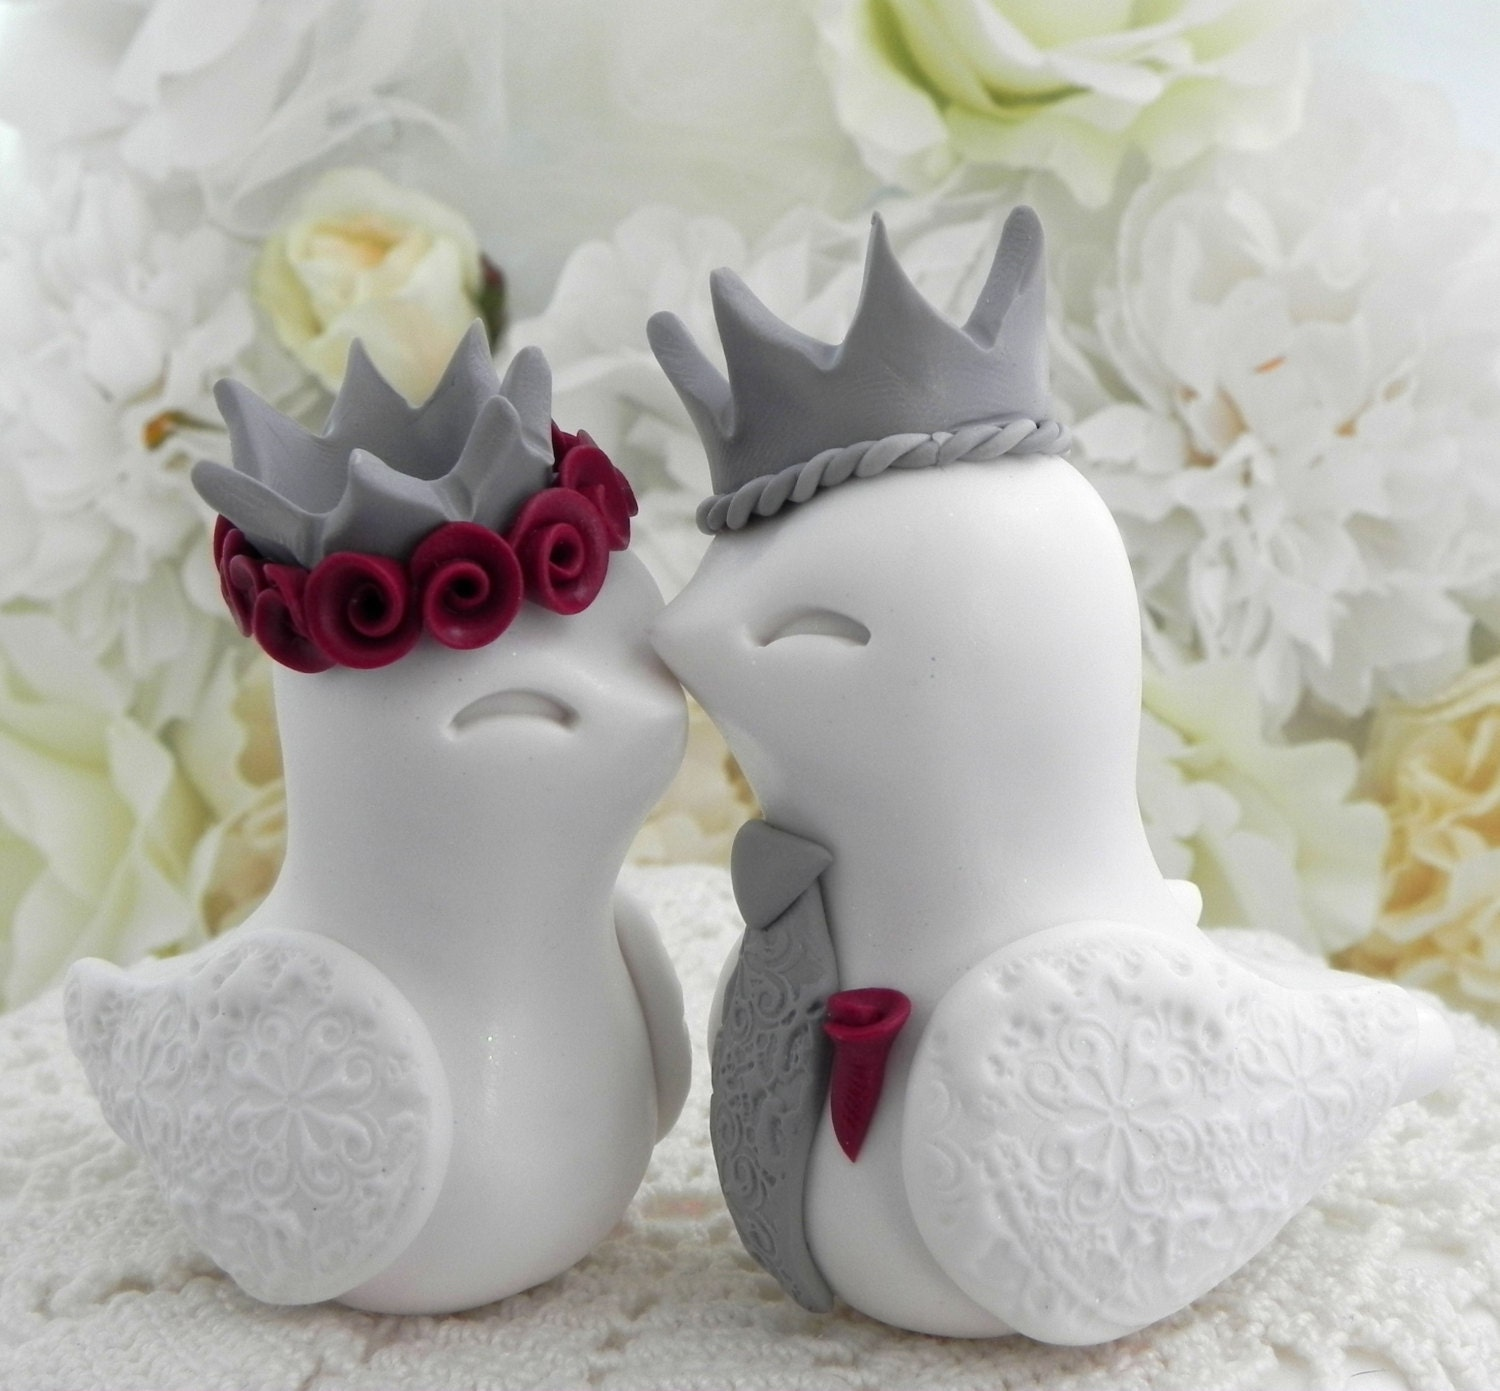 King & Queen Love Birds Wedding Cake Topper White Grey and